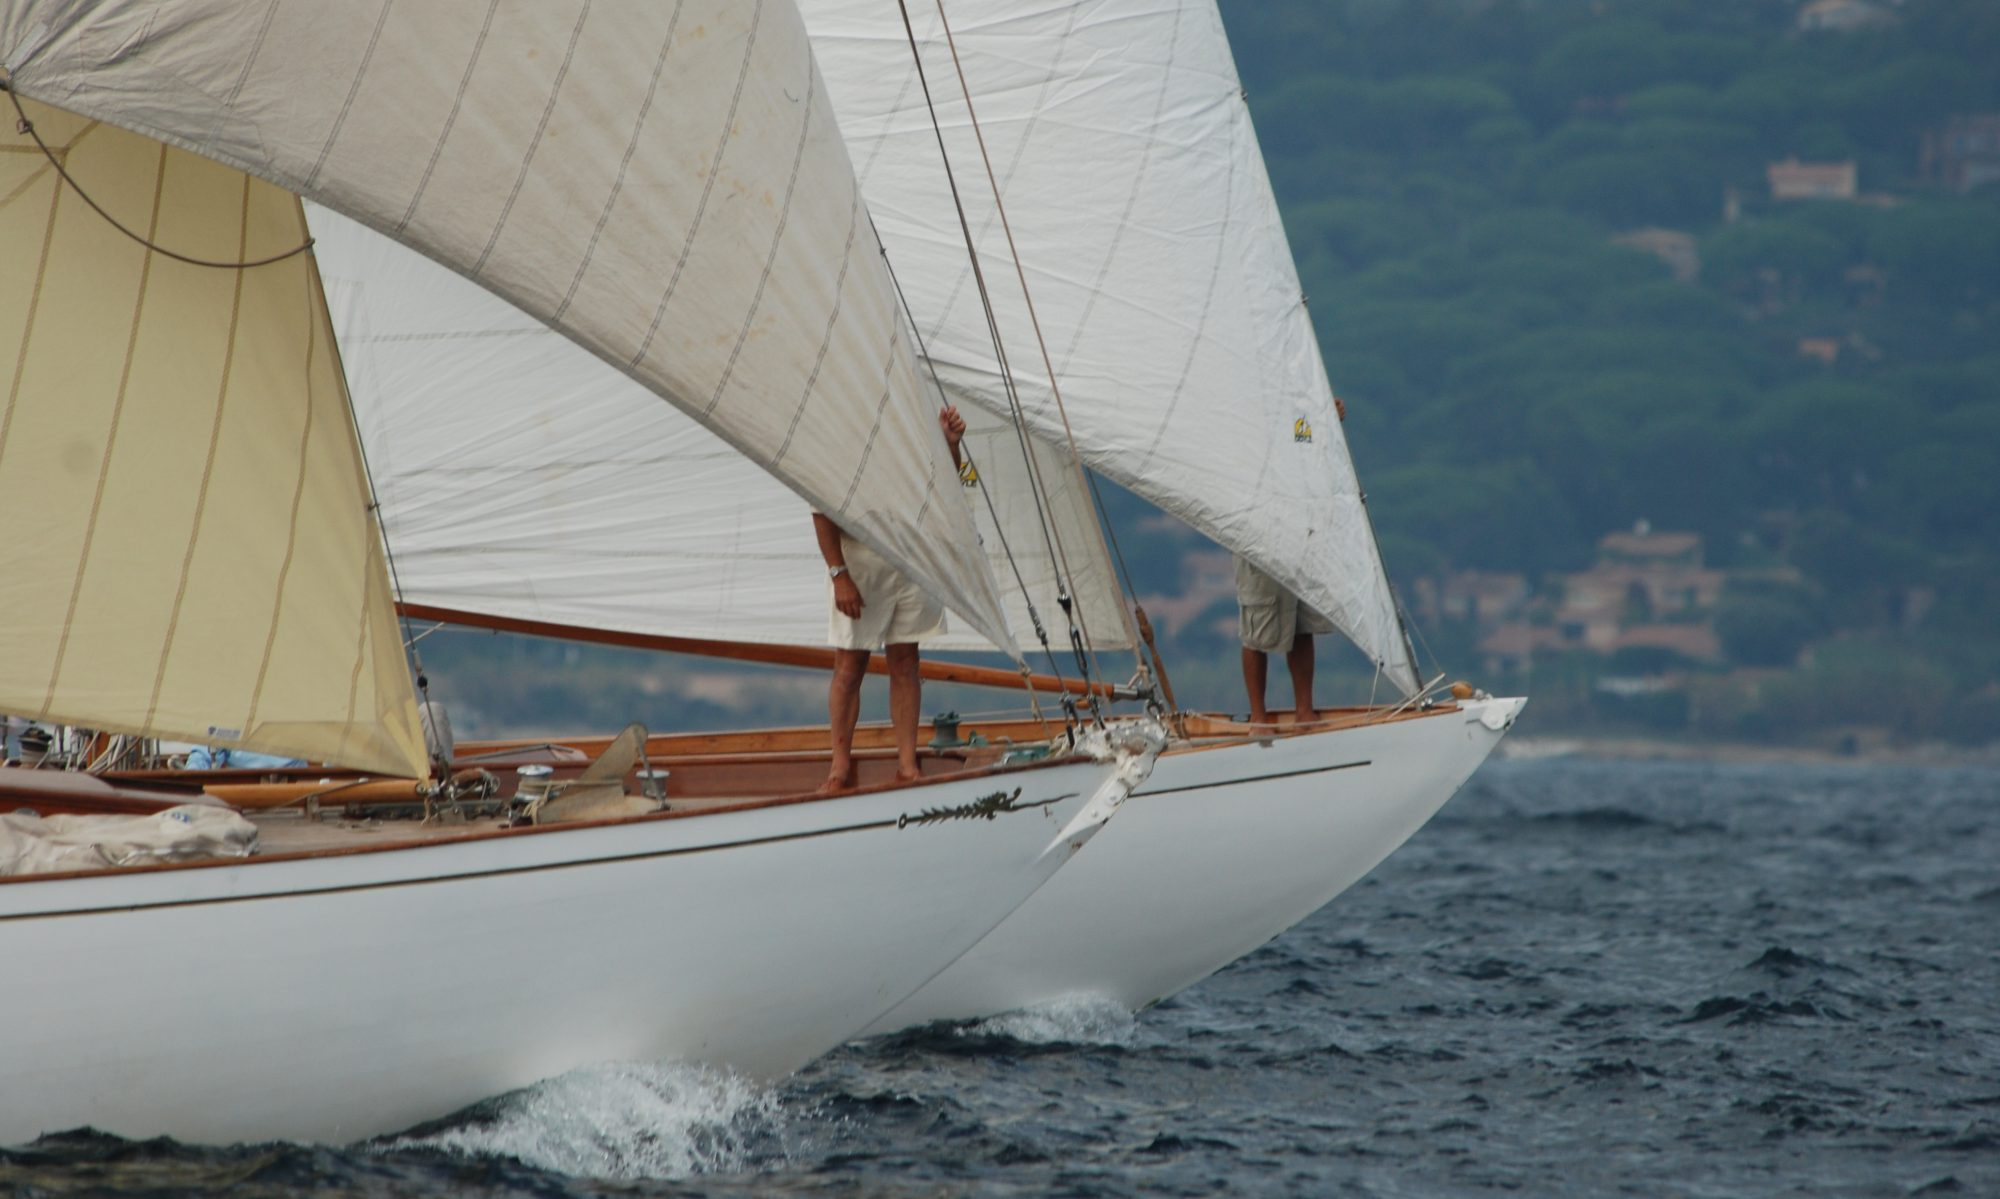 Noordster classic yachting